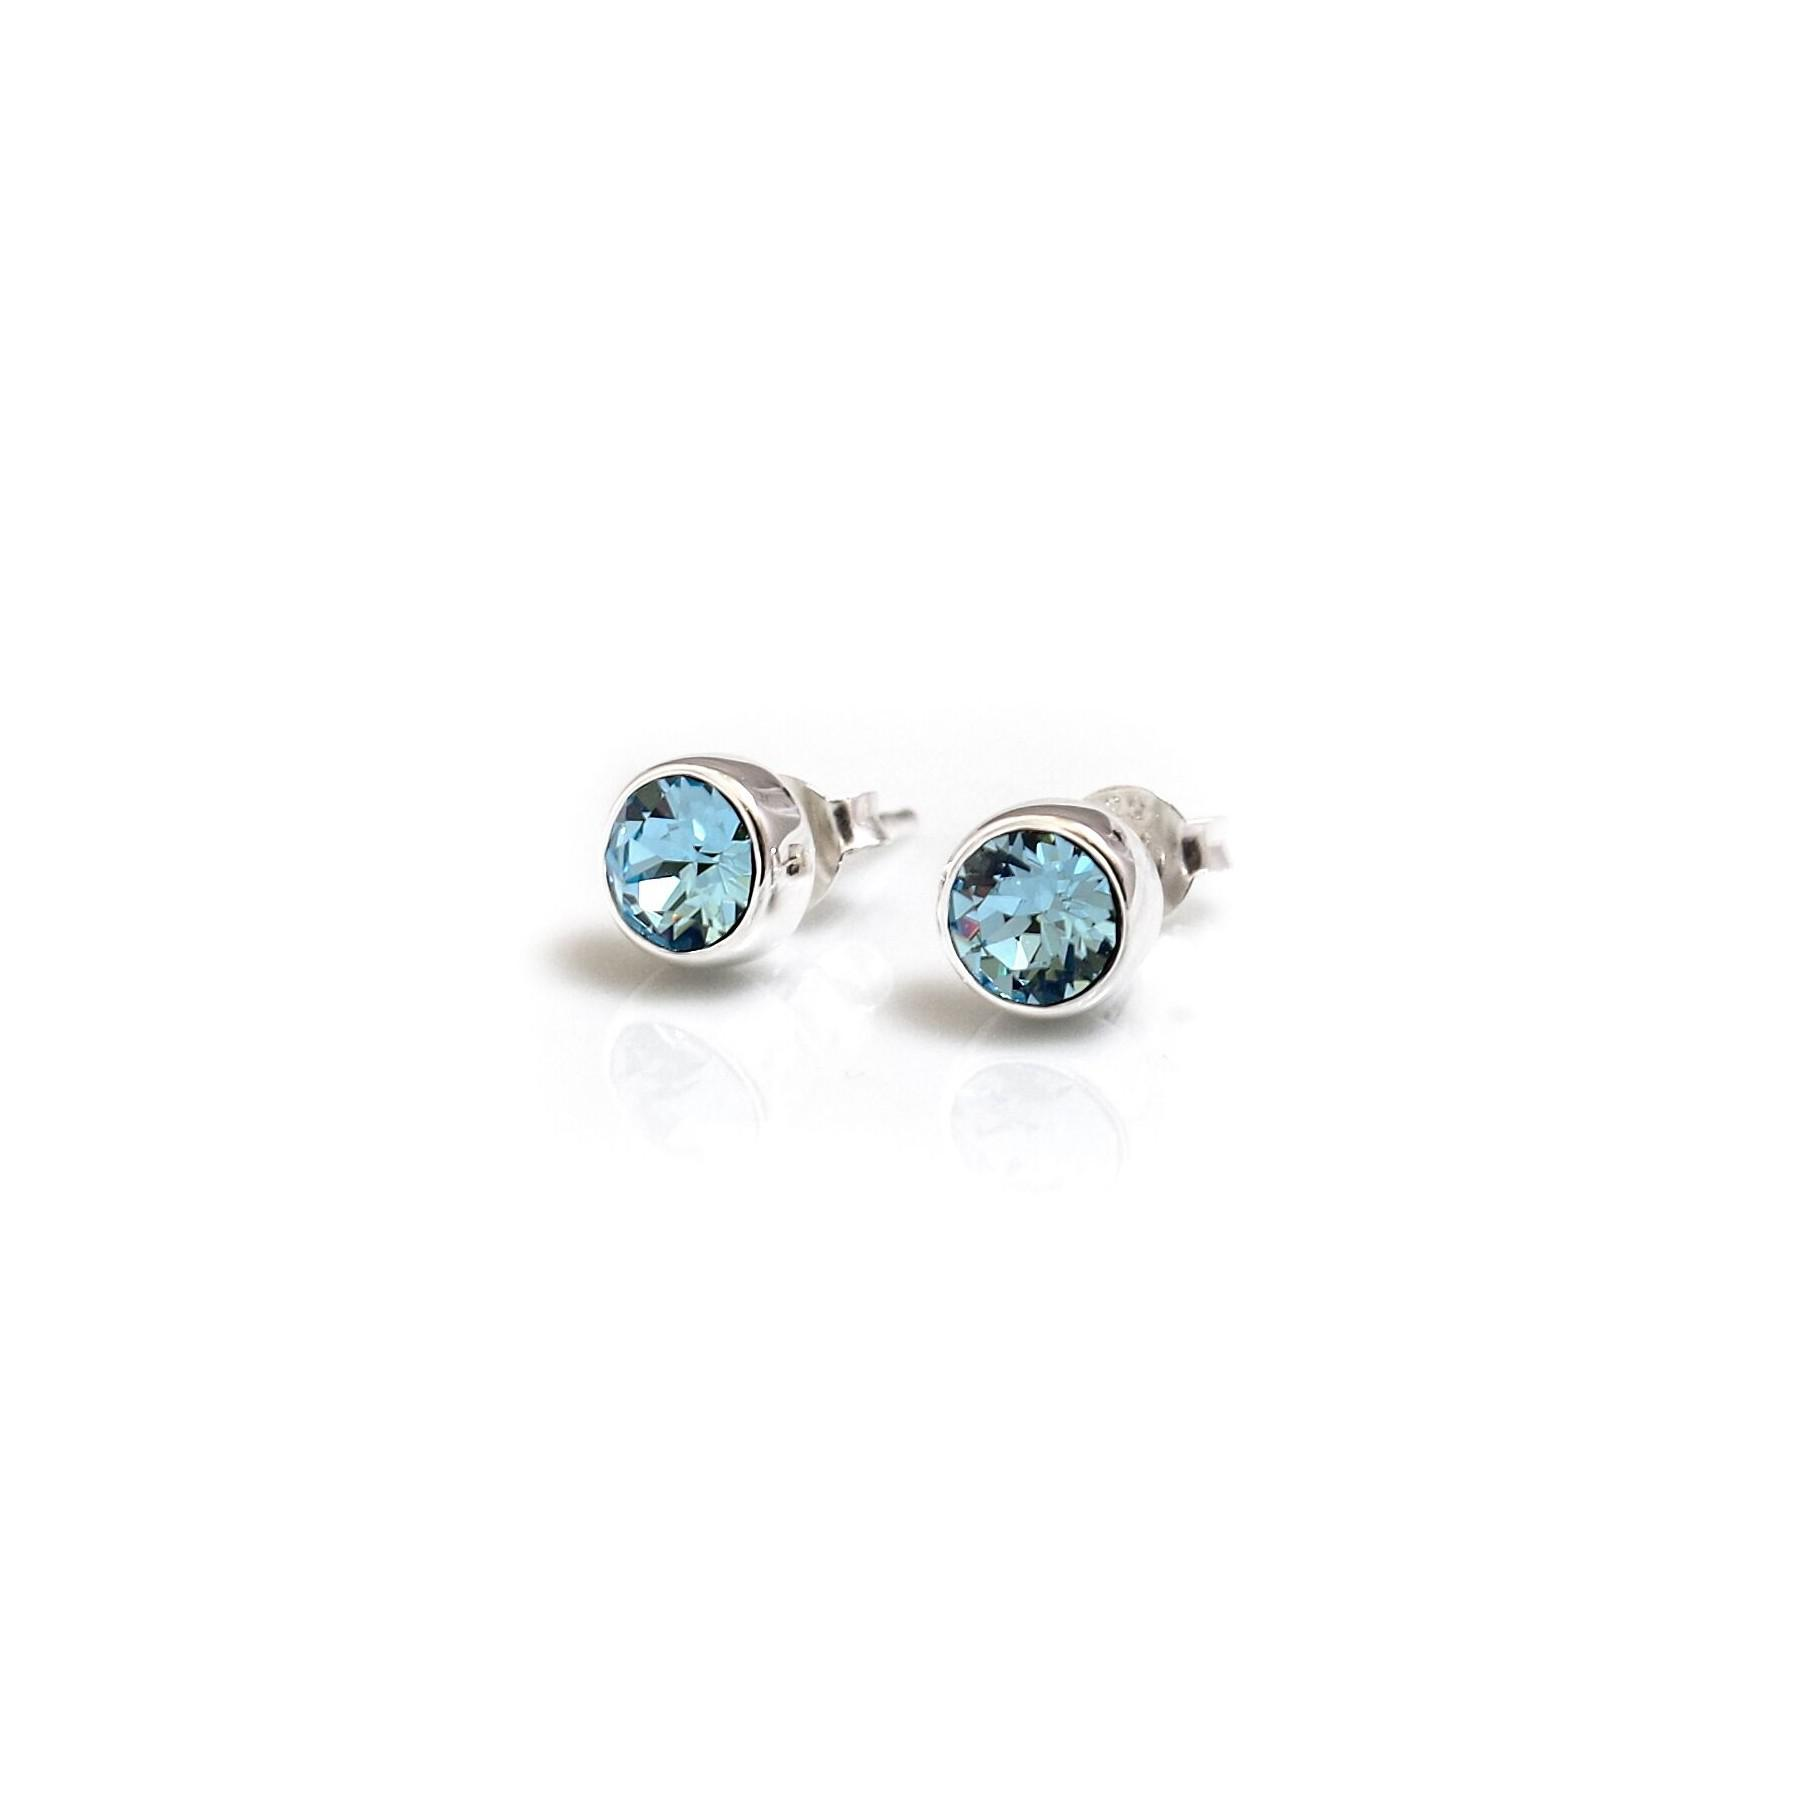 pin in w ct stud white t earrings aqua marine gold aquamarine